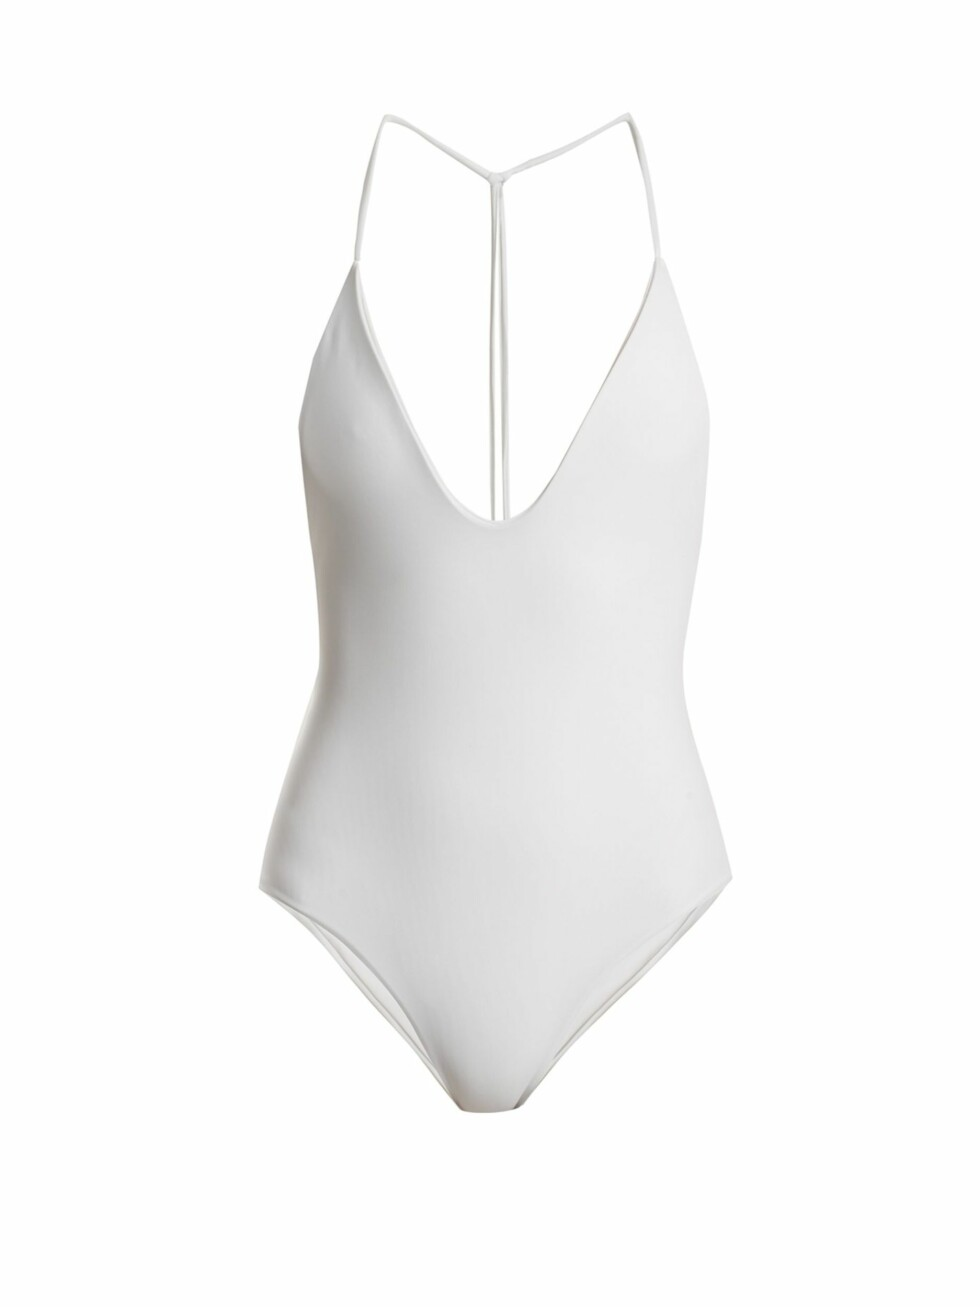 Badedrakt fra Jade Swim |1355,-| https://www.matchesfashion.com/intl/products/Jade-Swim-All-In-One-halterneck-swimsuit-1195587